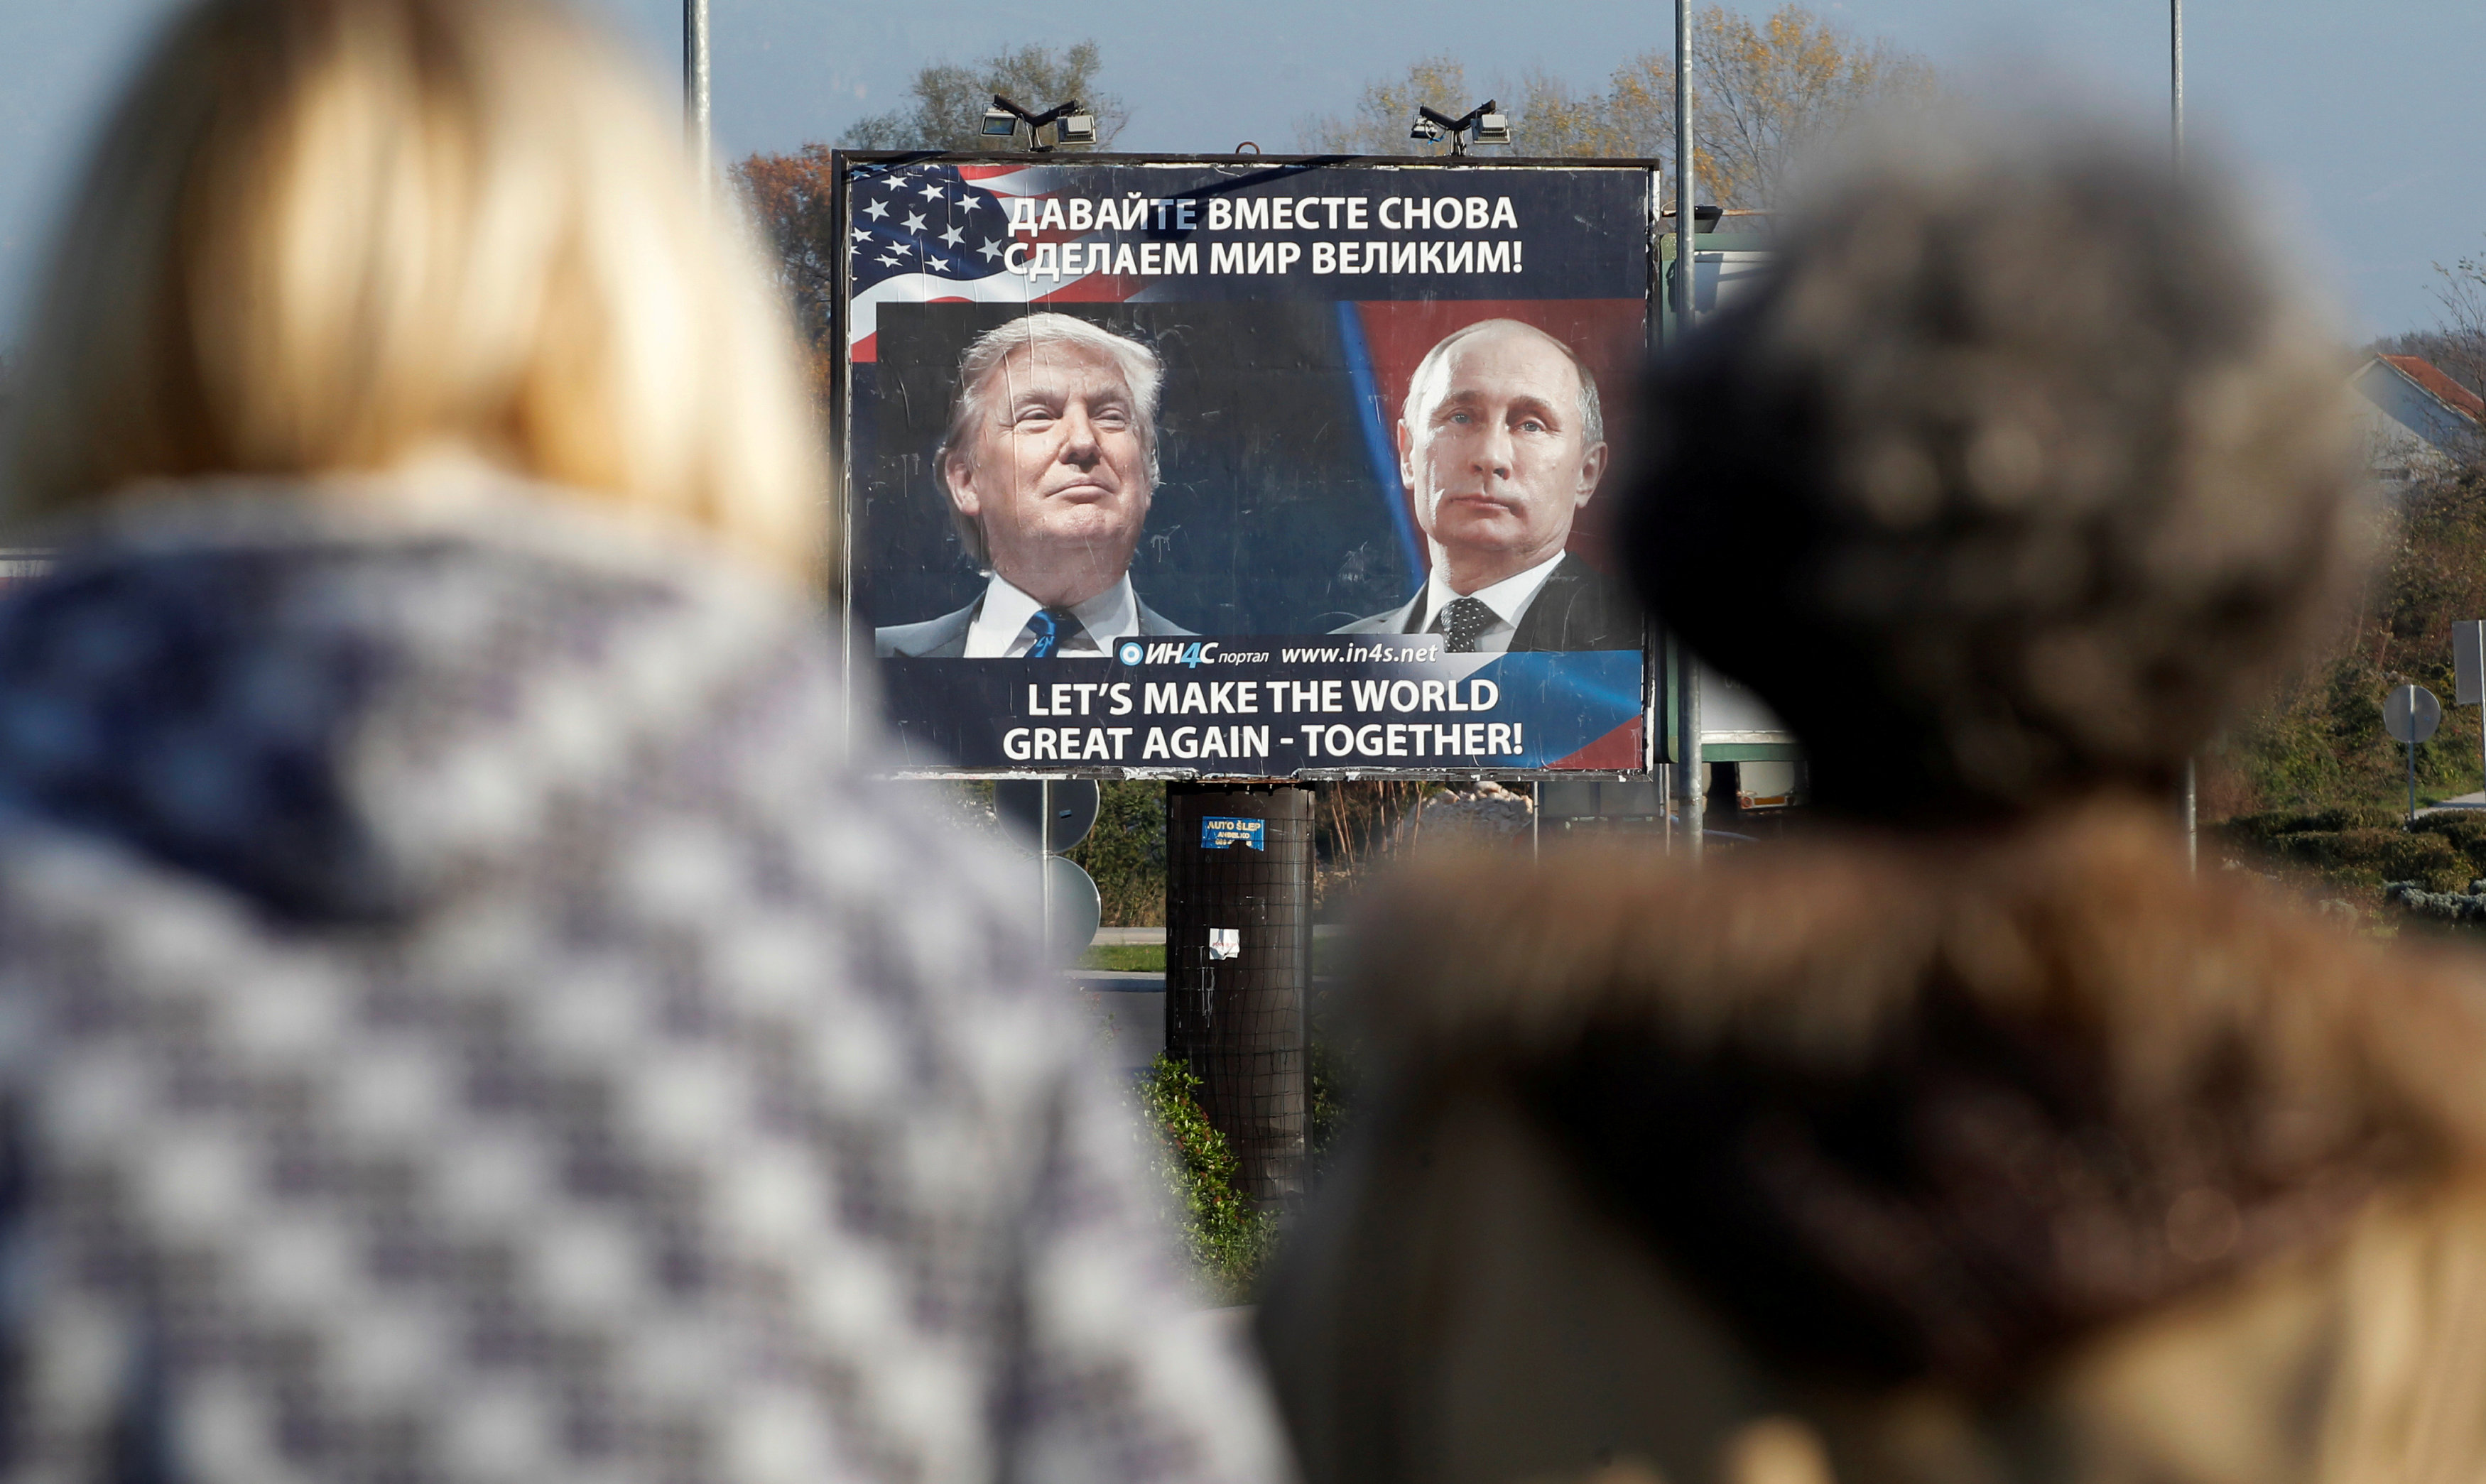 A billboard showing a pictures of US president-elect Donald Trump and Russian President Vladimir Putin is seen through pedestrians in Danilovgrad, Montenegro,